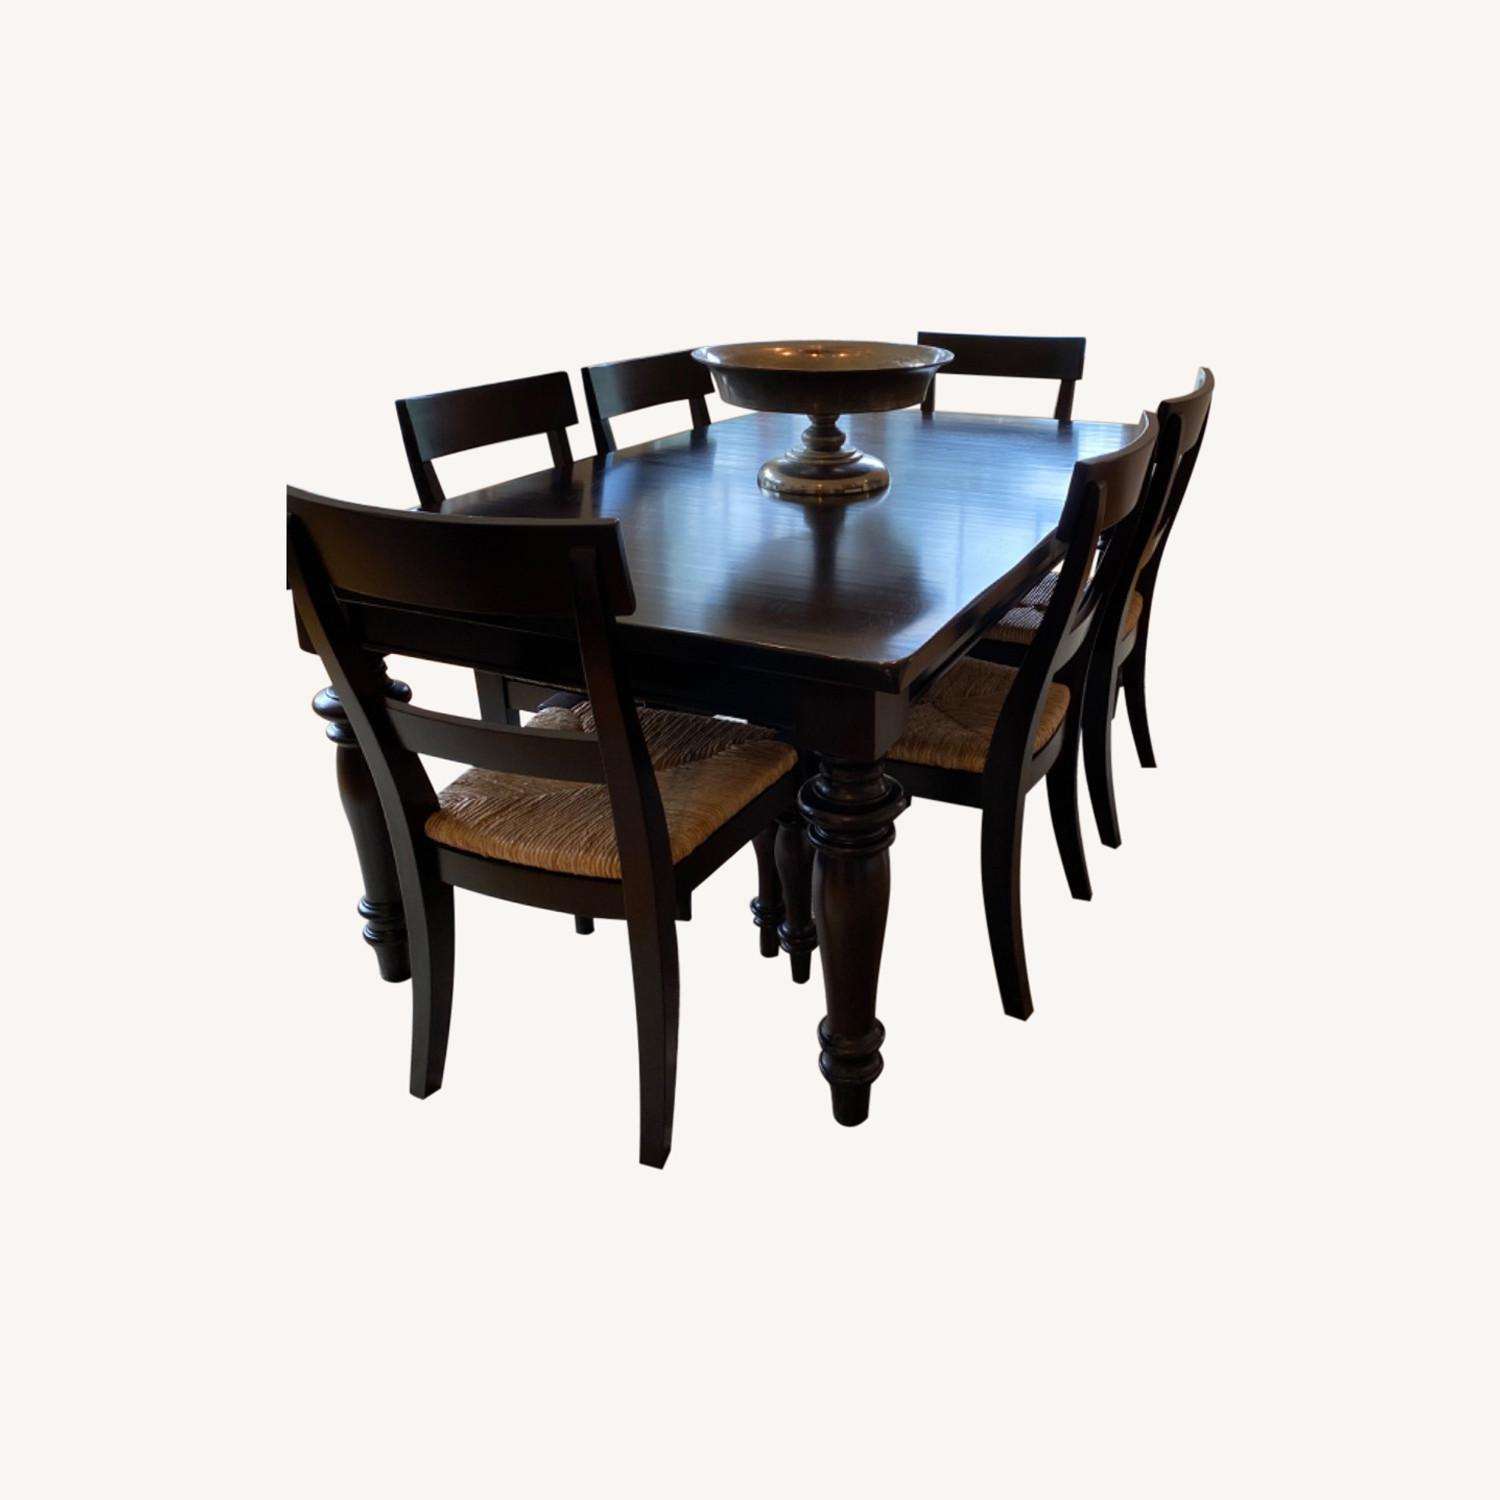 Pottery Barn Table and Chairs - image-0